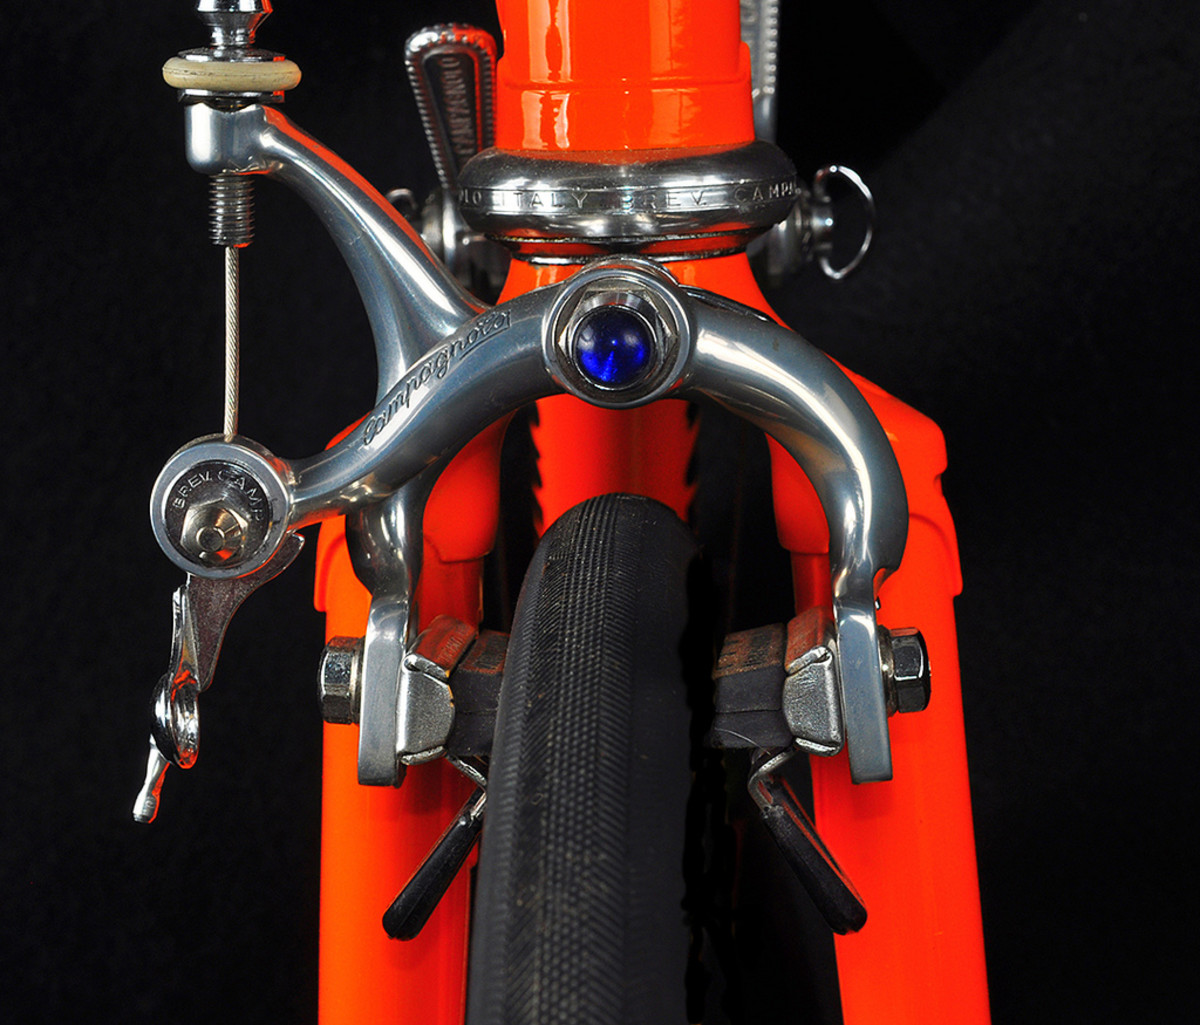 How To Tune Your Bicycle Brakes to Stop Properly